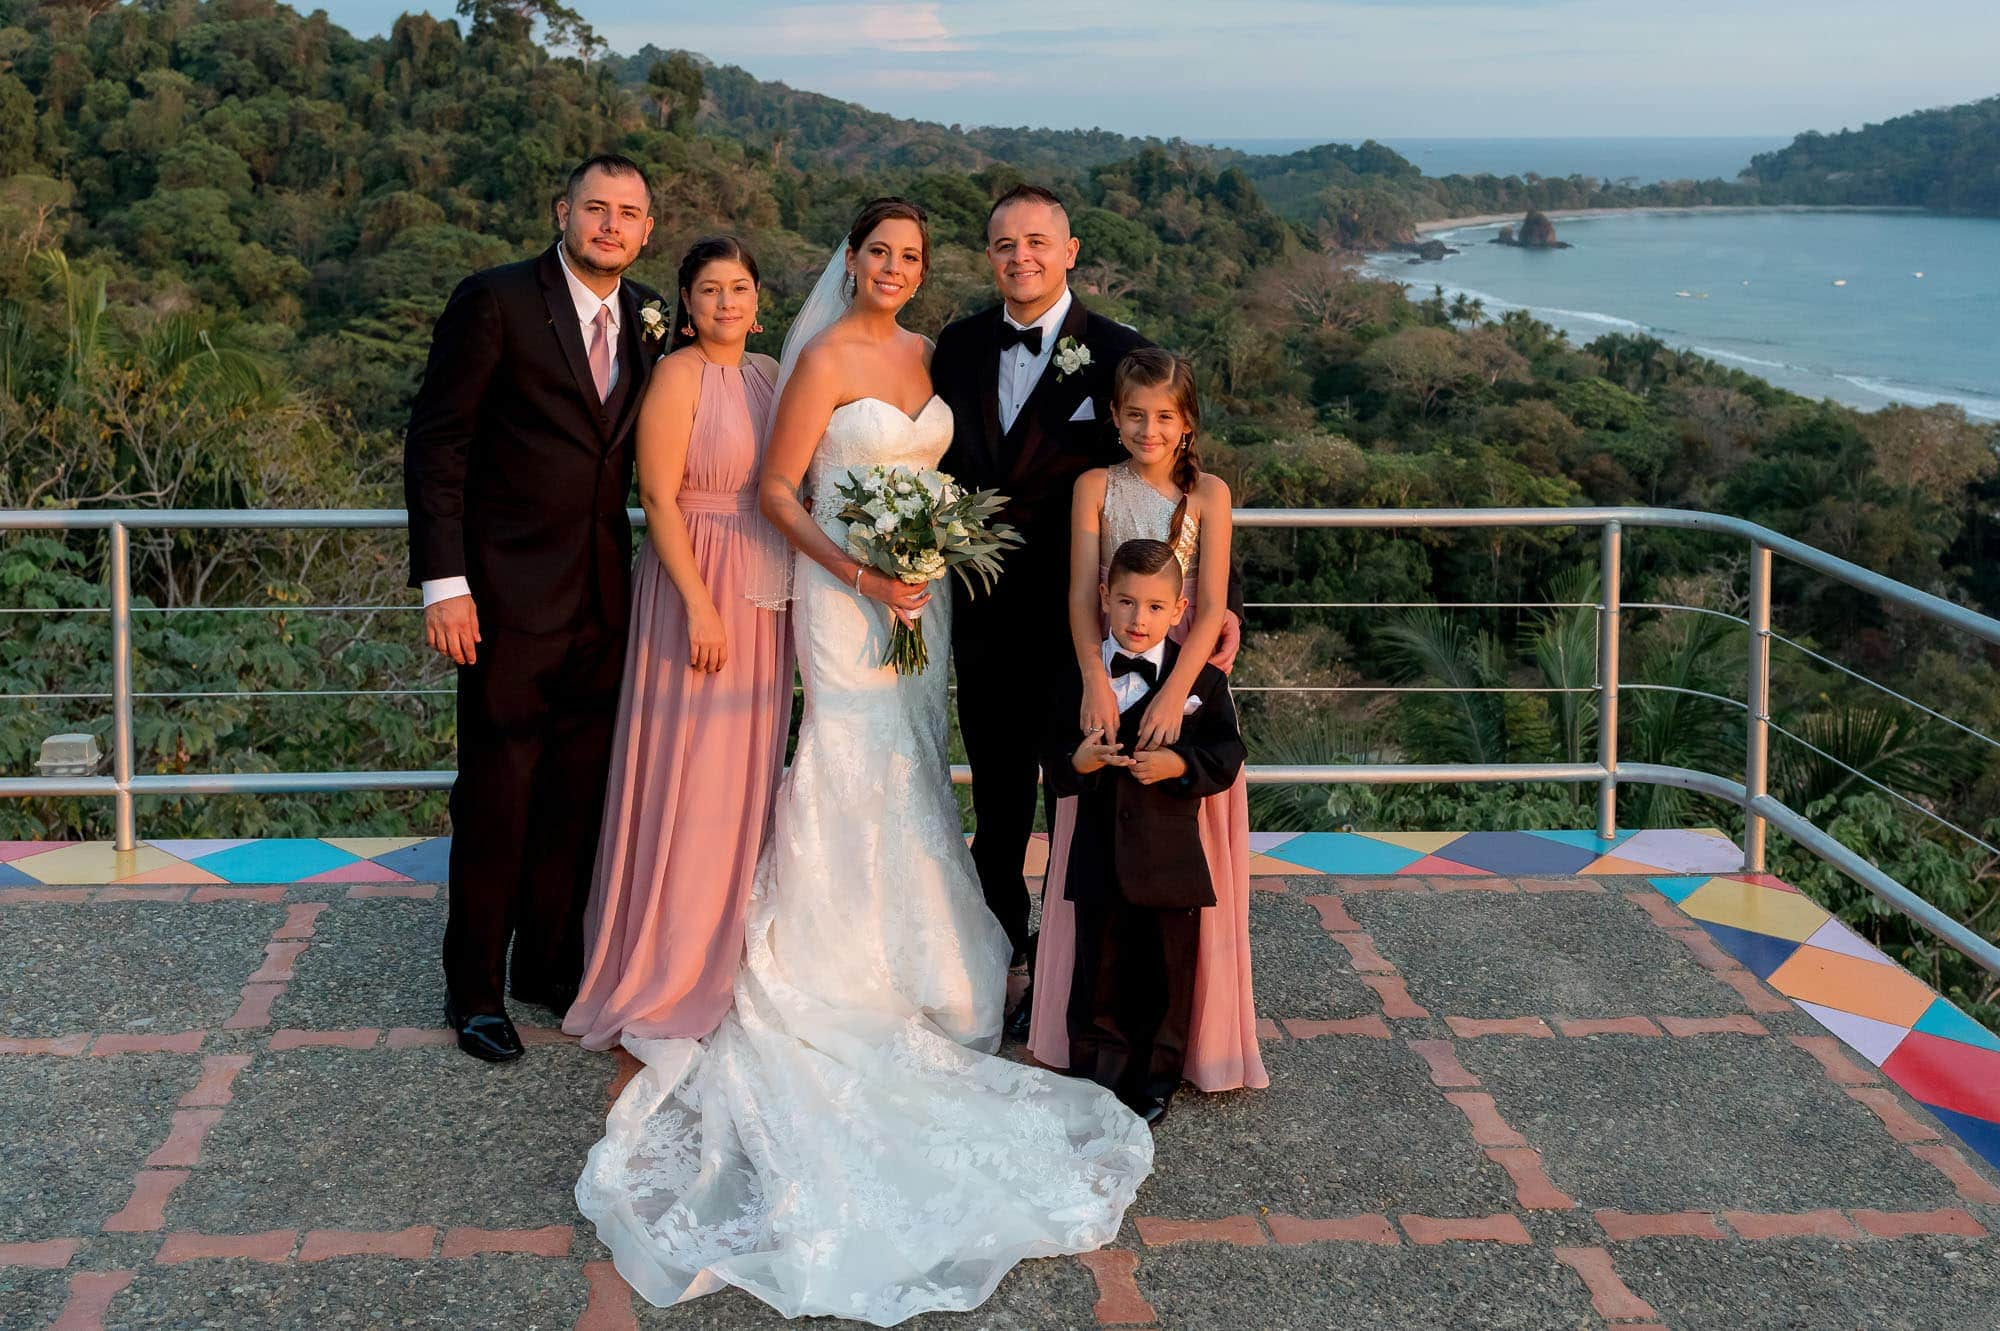 Formal wedding portrait of the bride and groom with family